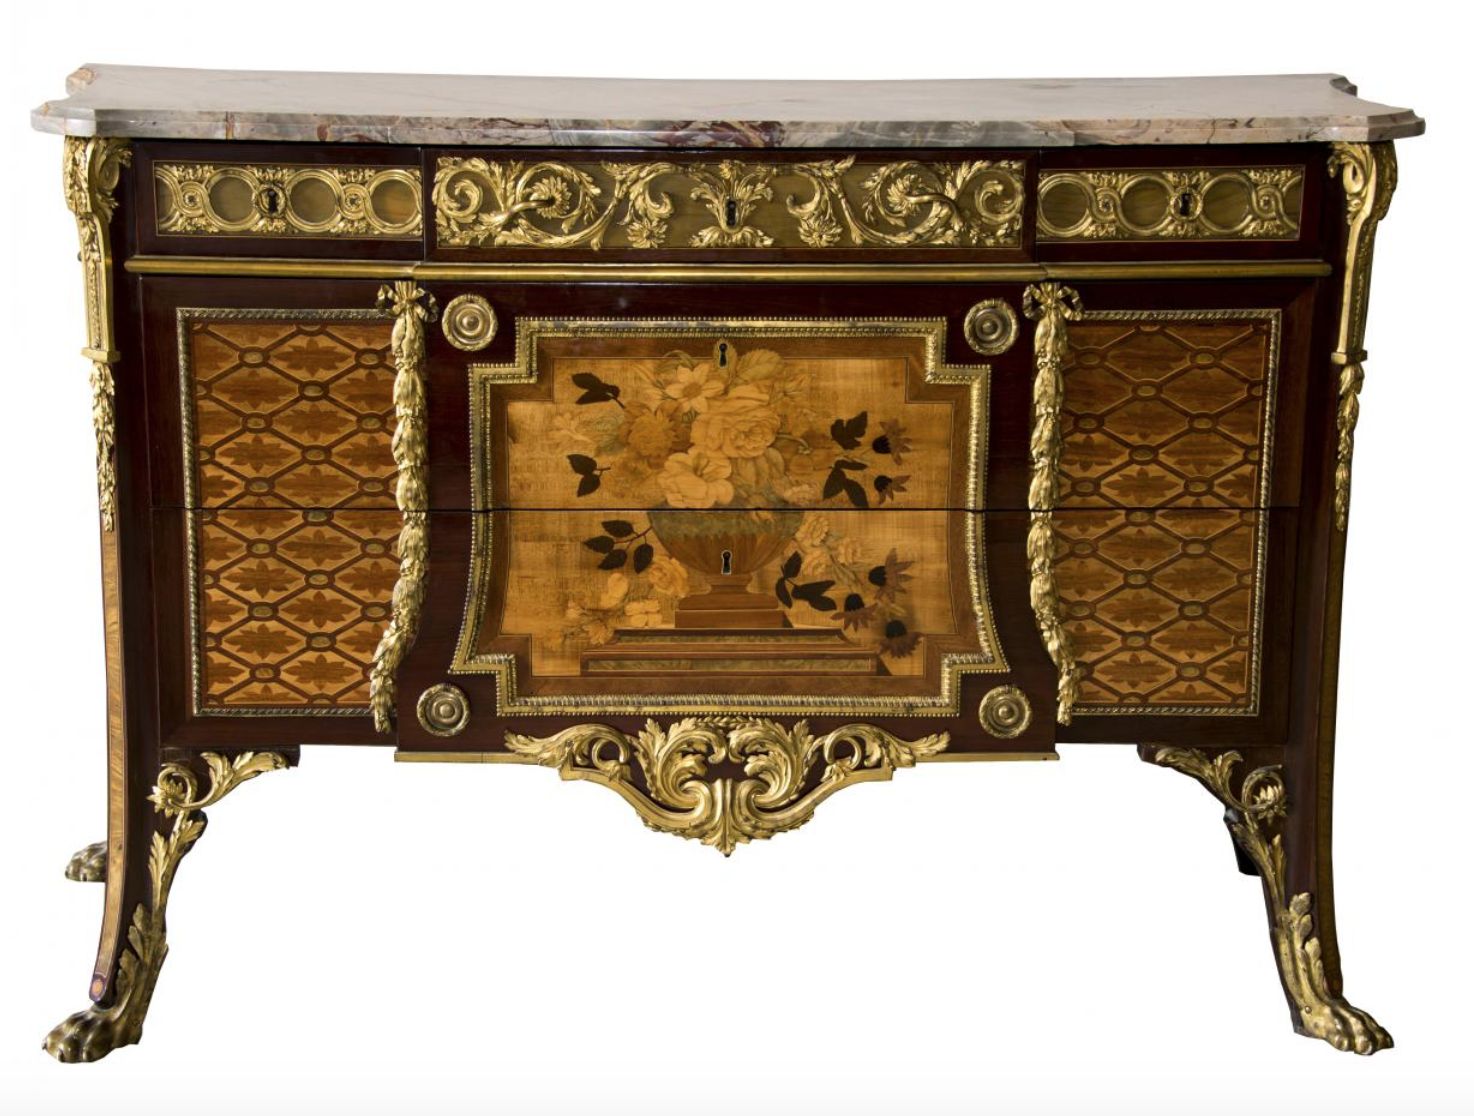 A commode designed by Jean-Henri Reisener (1734 -1806) and made for the Palace of Versailles in 1776.